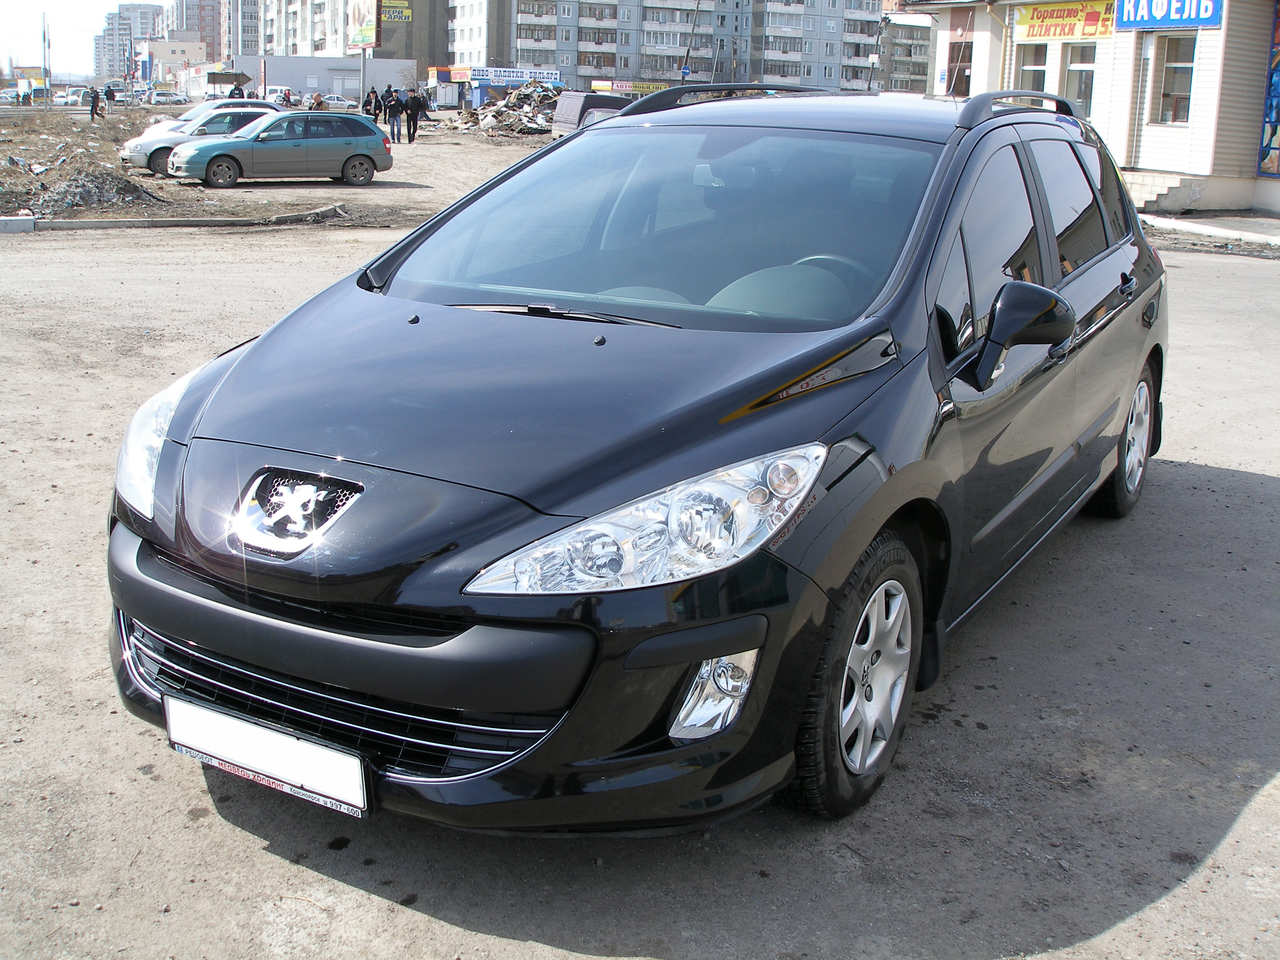 2009 peugeot 308 sw photos 1 6 gasoline ff automatic for sale. Black Bedroom Furniture Sets. Home Design Ideas